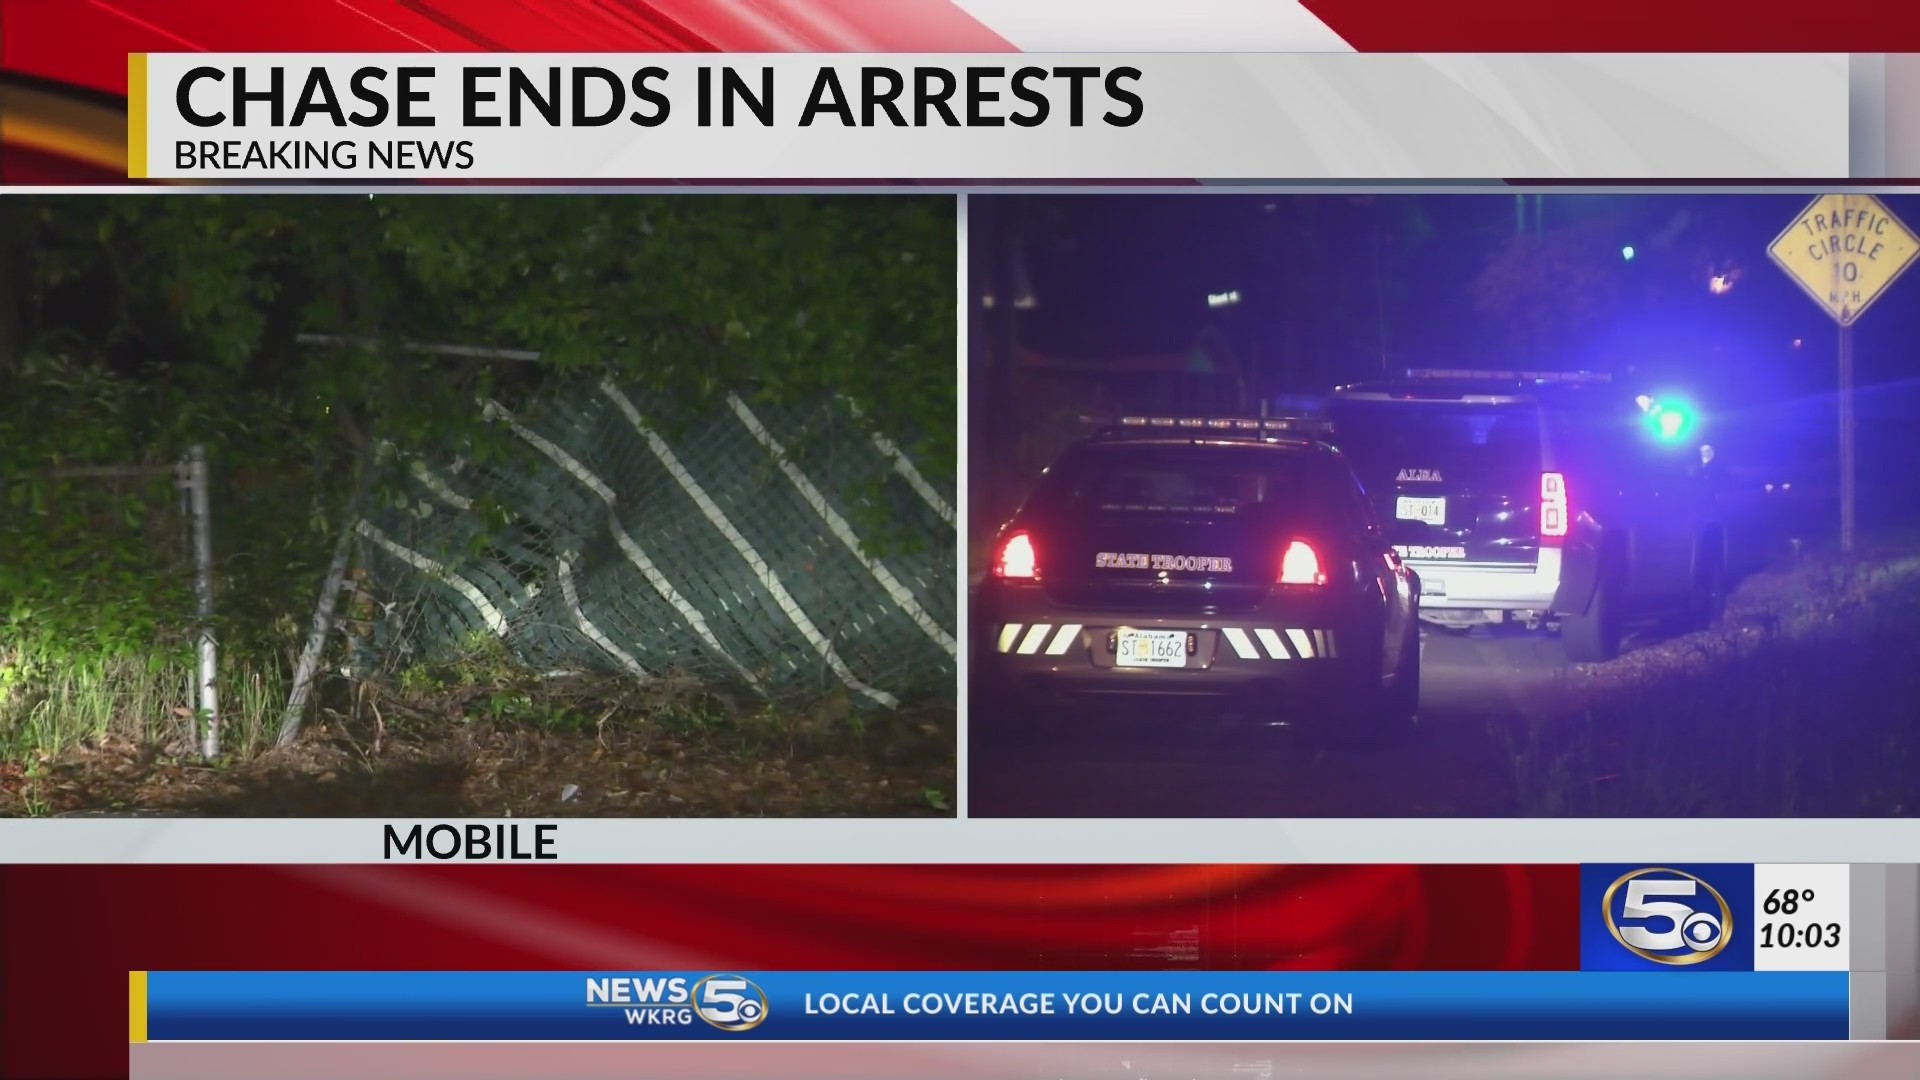 VIDEO: Police chase ends in crash, multiple arrests in Maysville Community